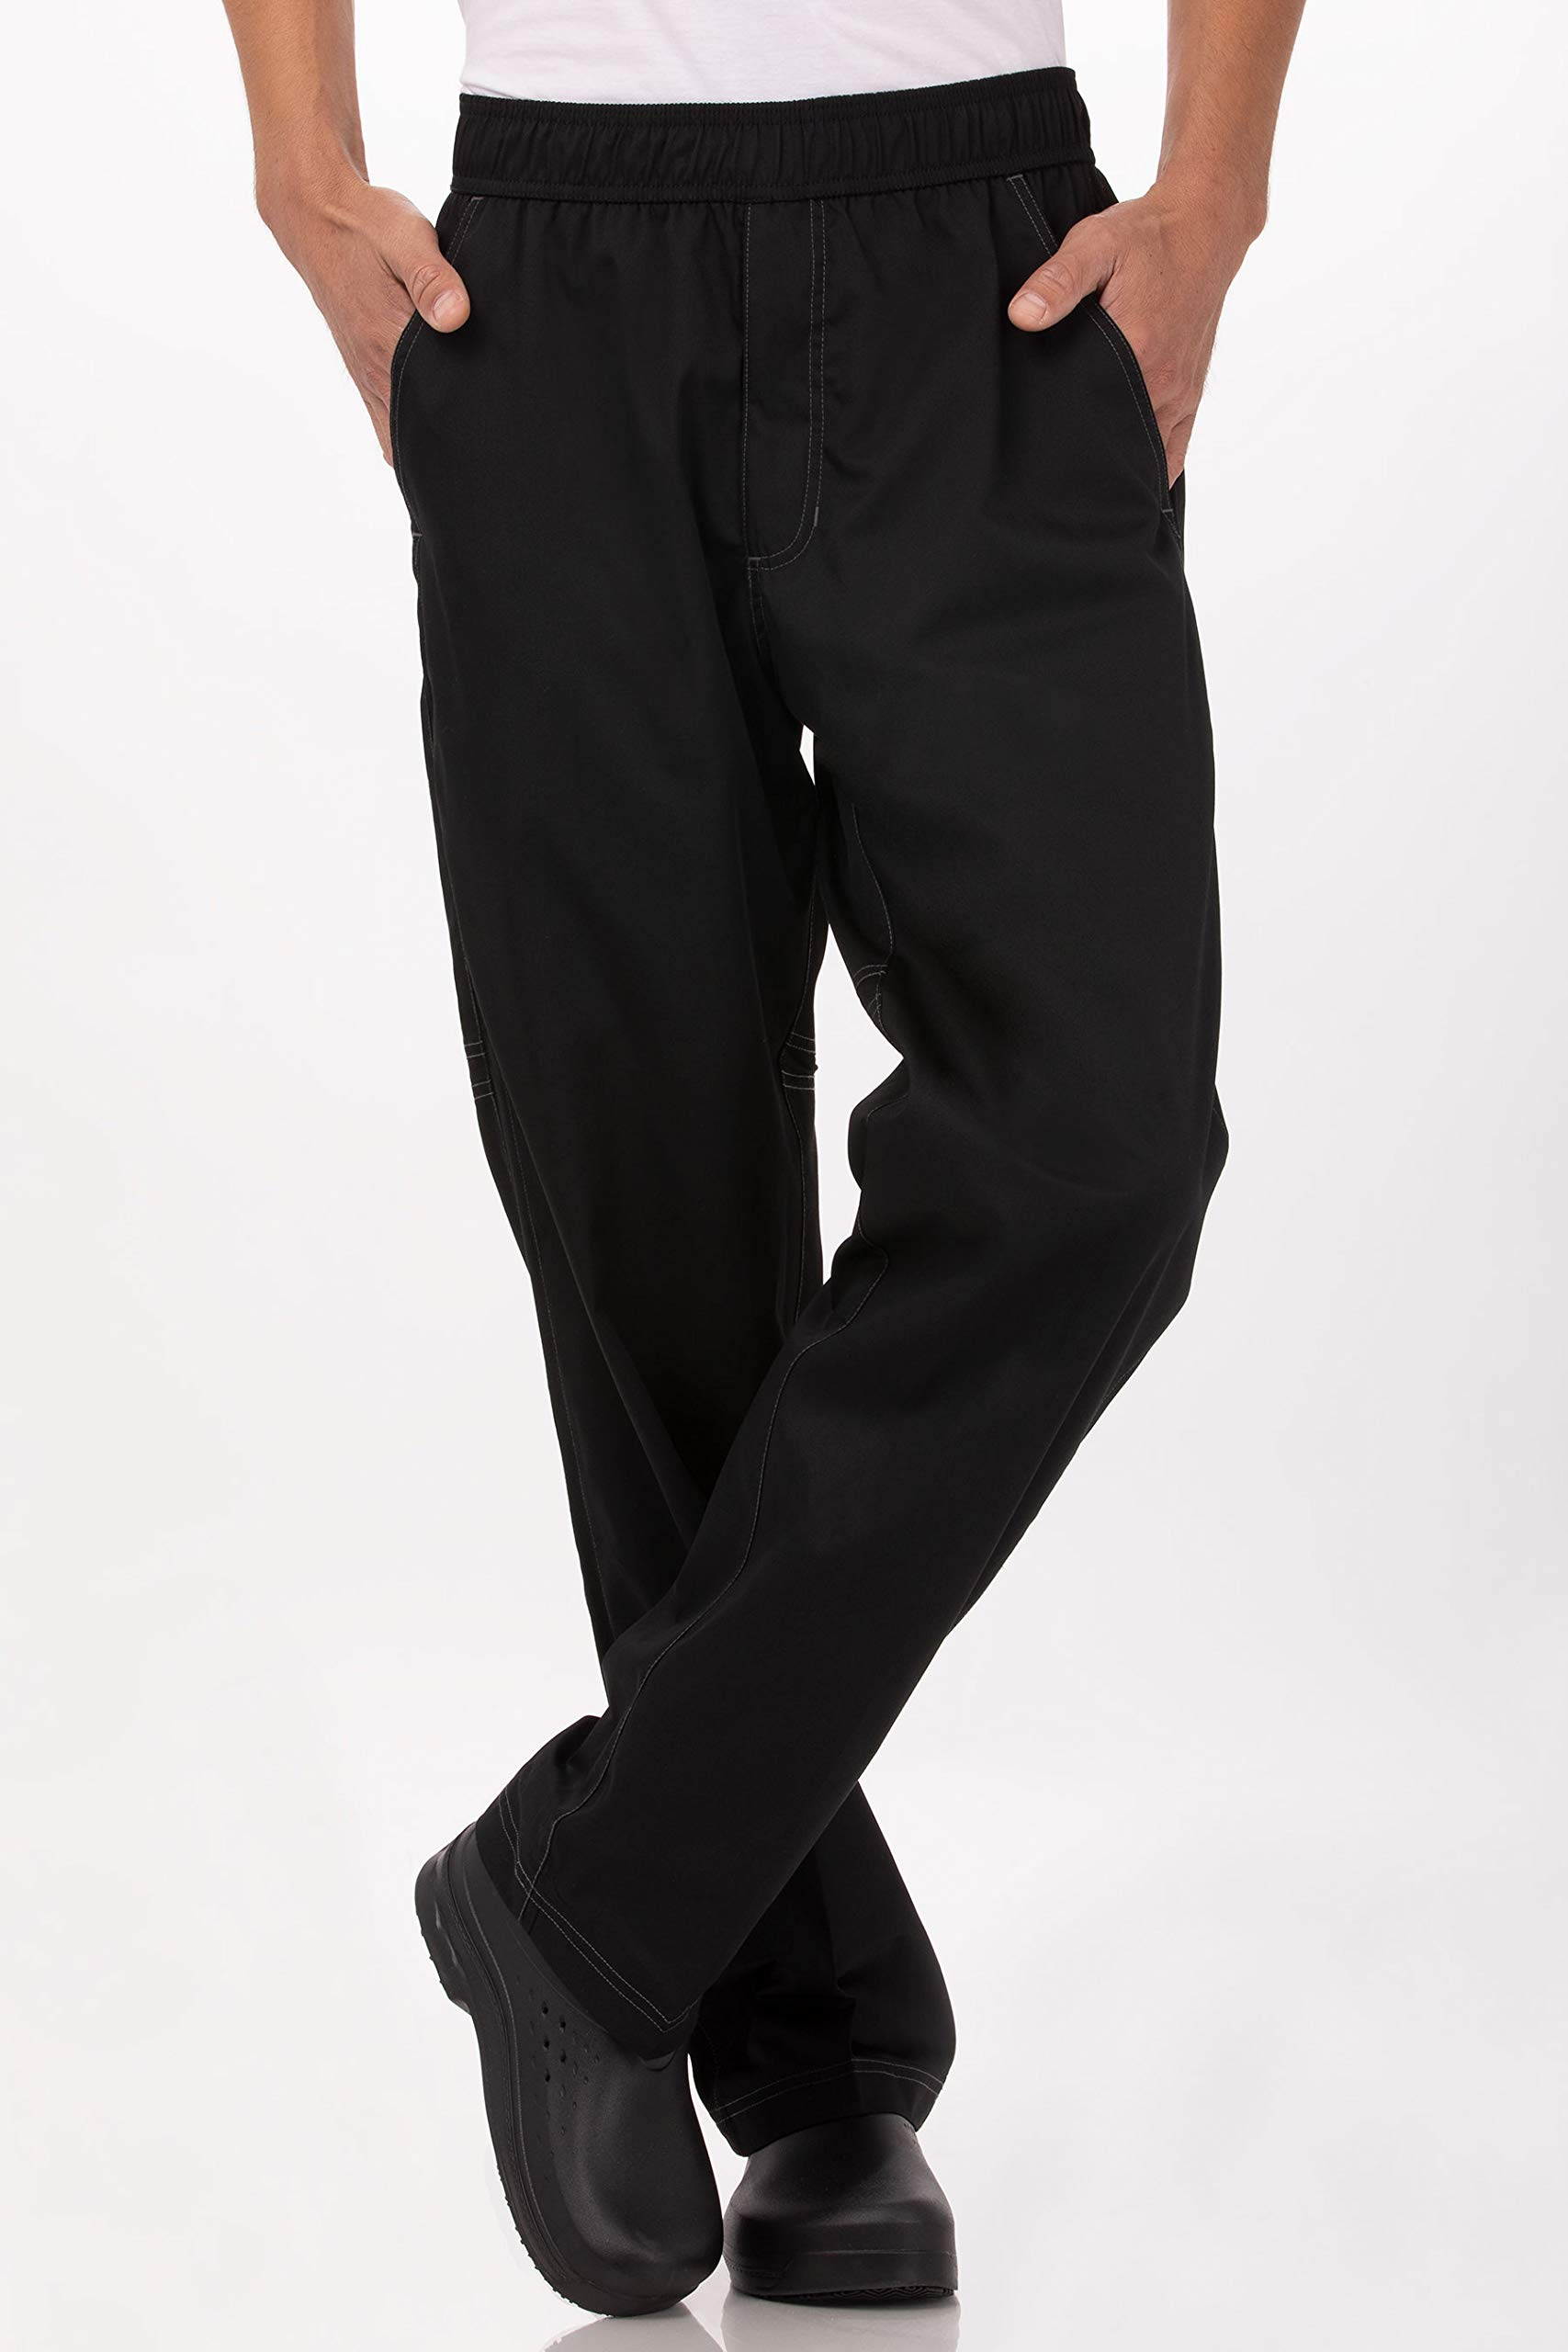 Chef Works Men's Cool Vent Baggy Chef Pants, Black, 3X-Large by Chef Works